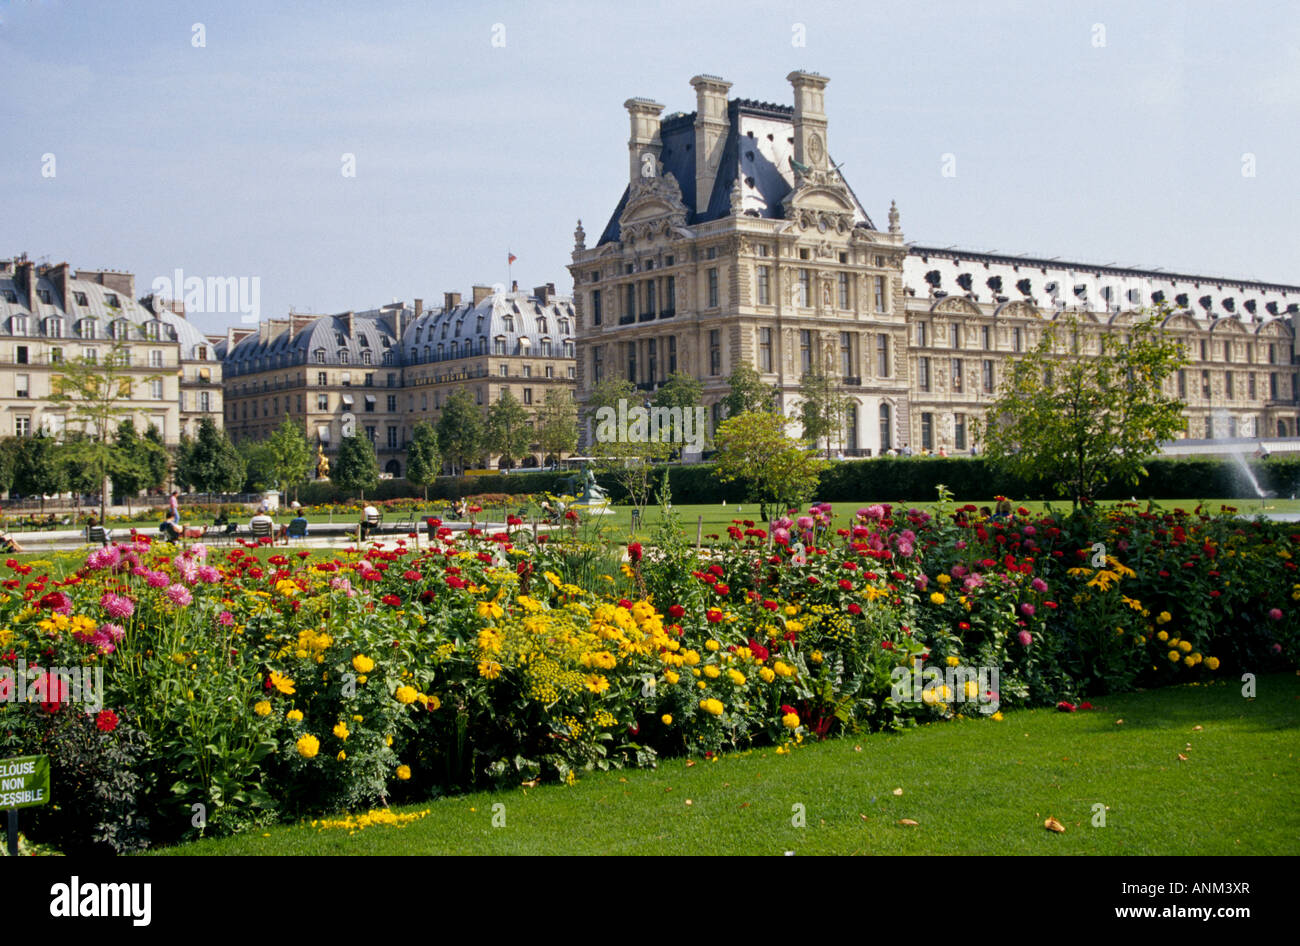 A view of the Garden des Tuileries or Jardin des Tuileries sitting ...